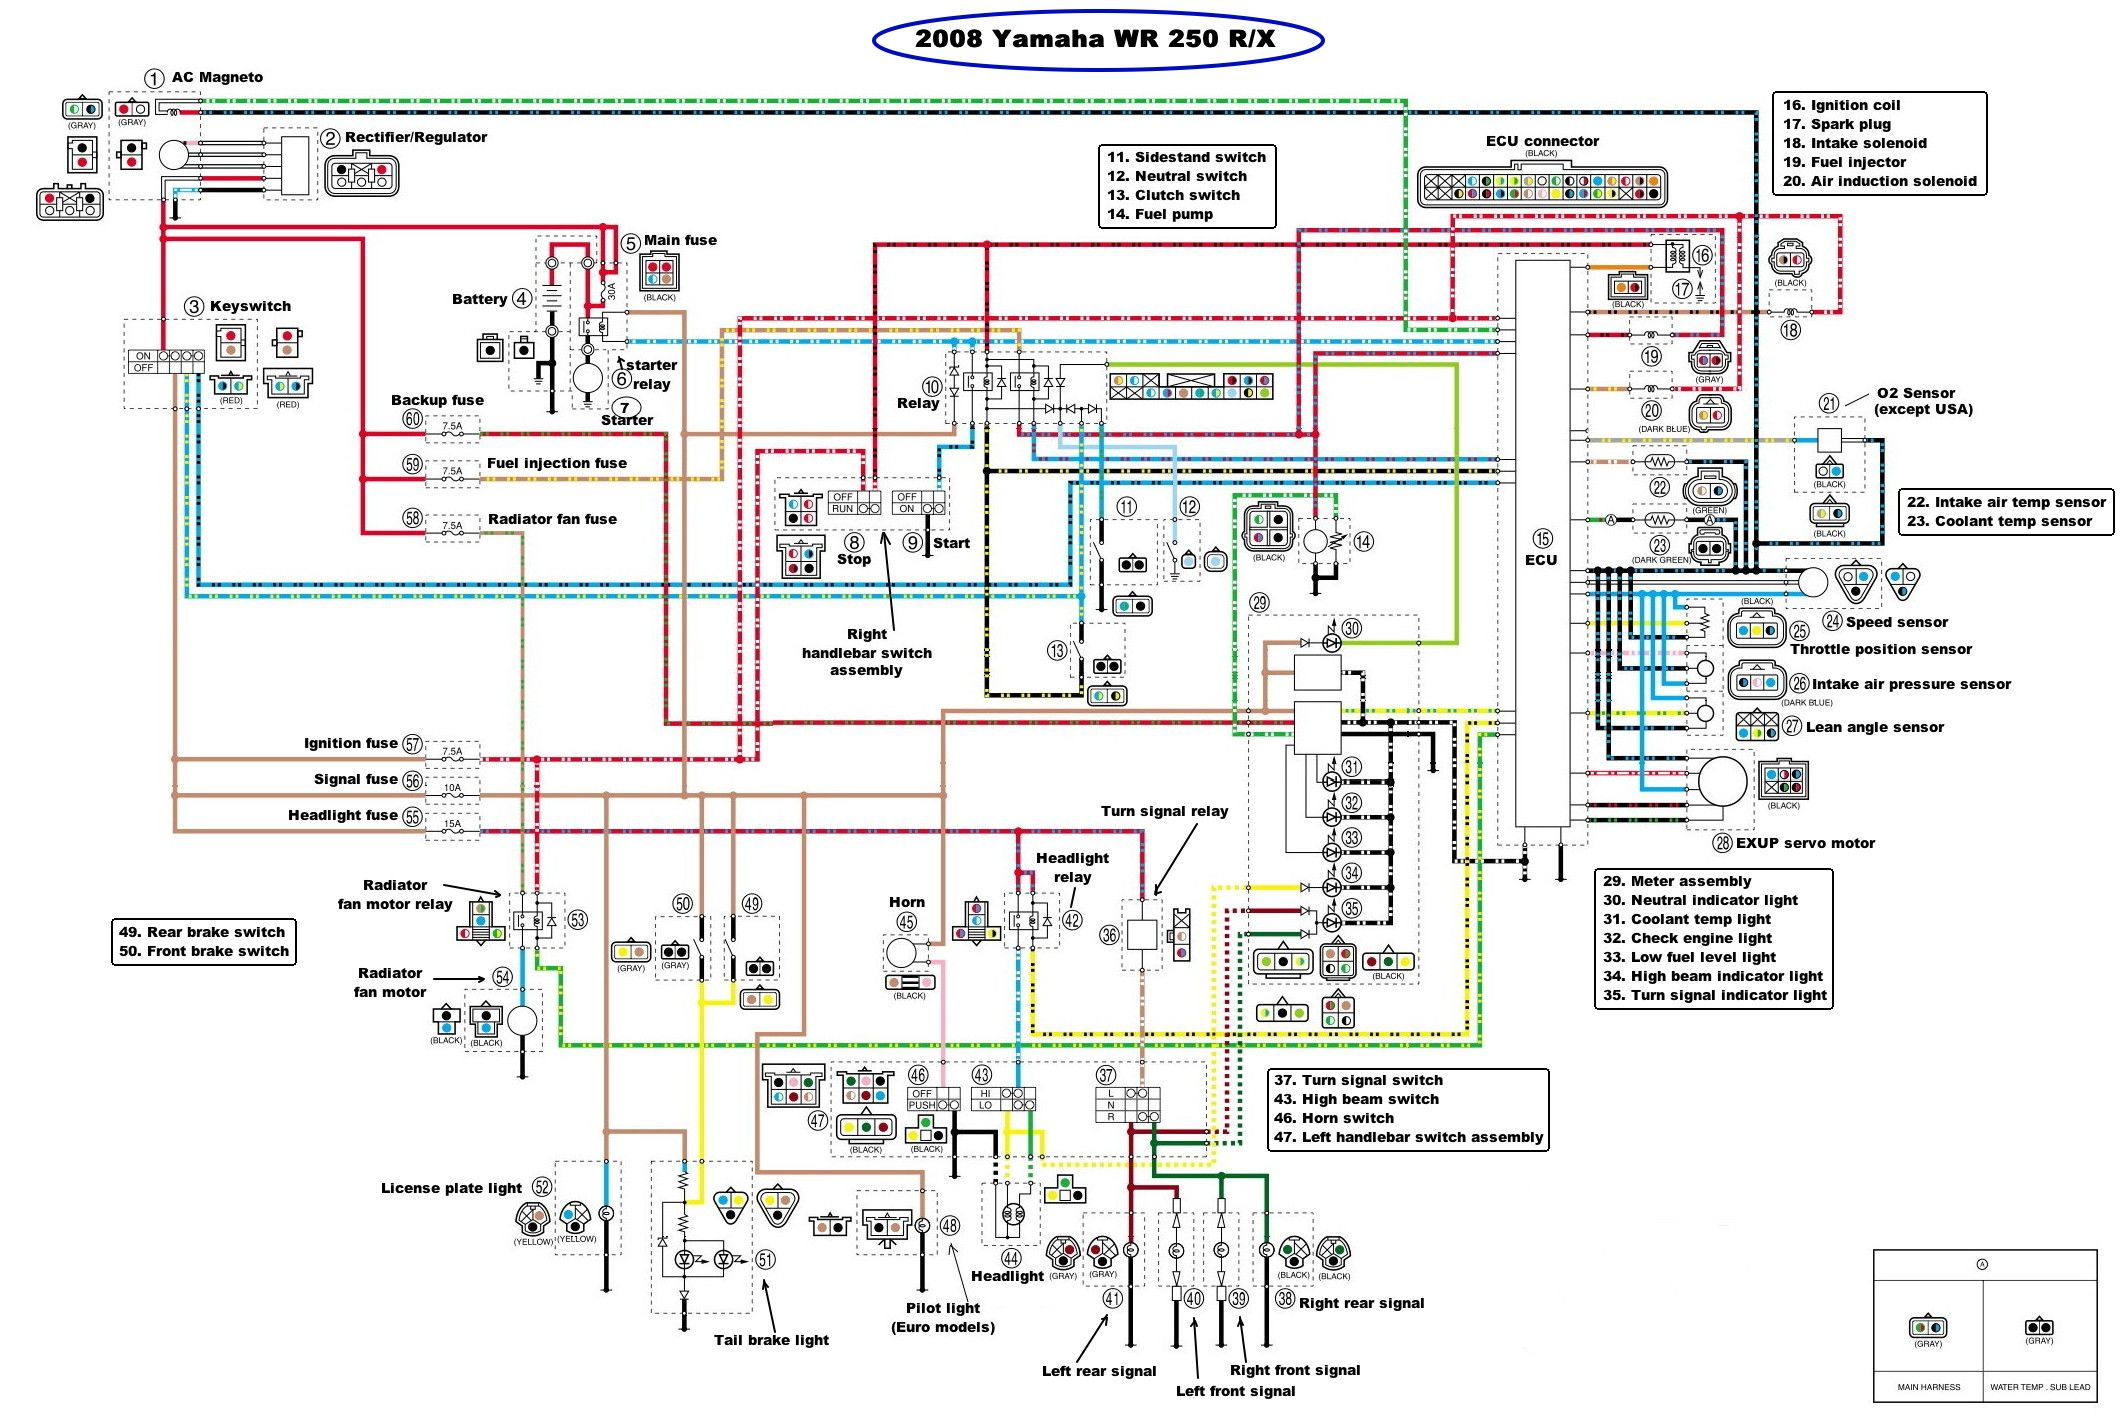 2000 yamaha r6 tail light wiring diagram detailed schematic diagrams rh  4rmotorsports com 2003 yamaha r6 tail light wiring diagram 2000 Yamaha R6  Wiring- ...